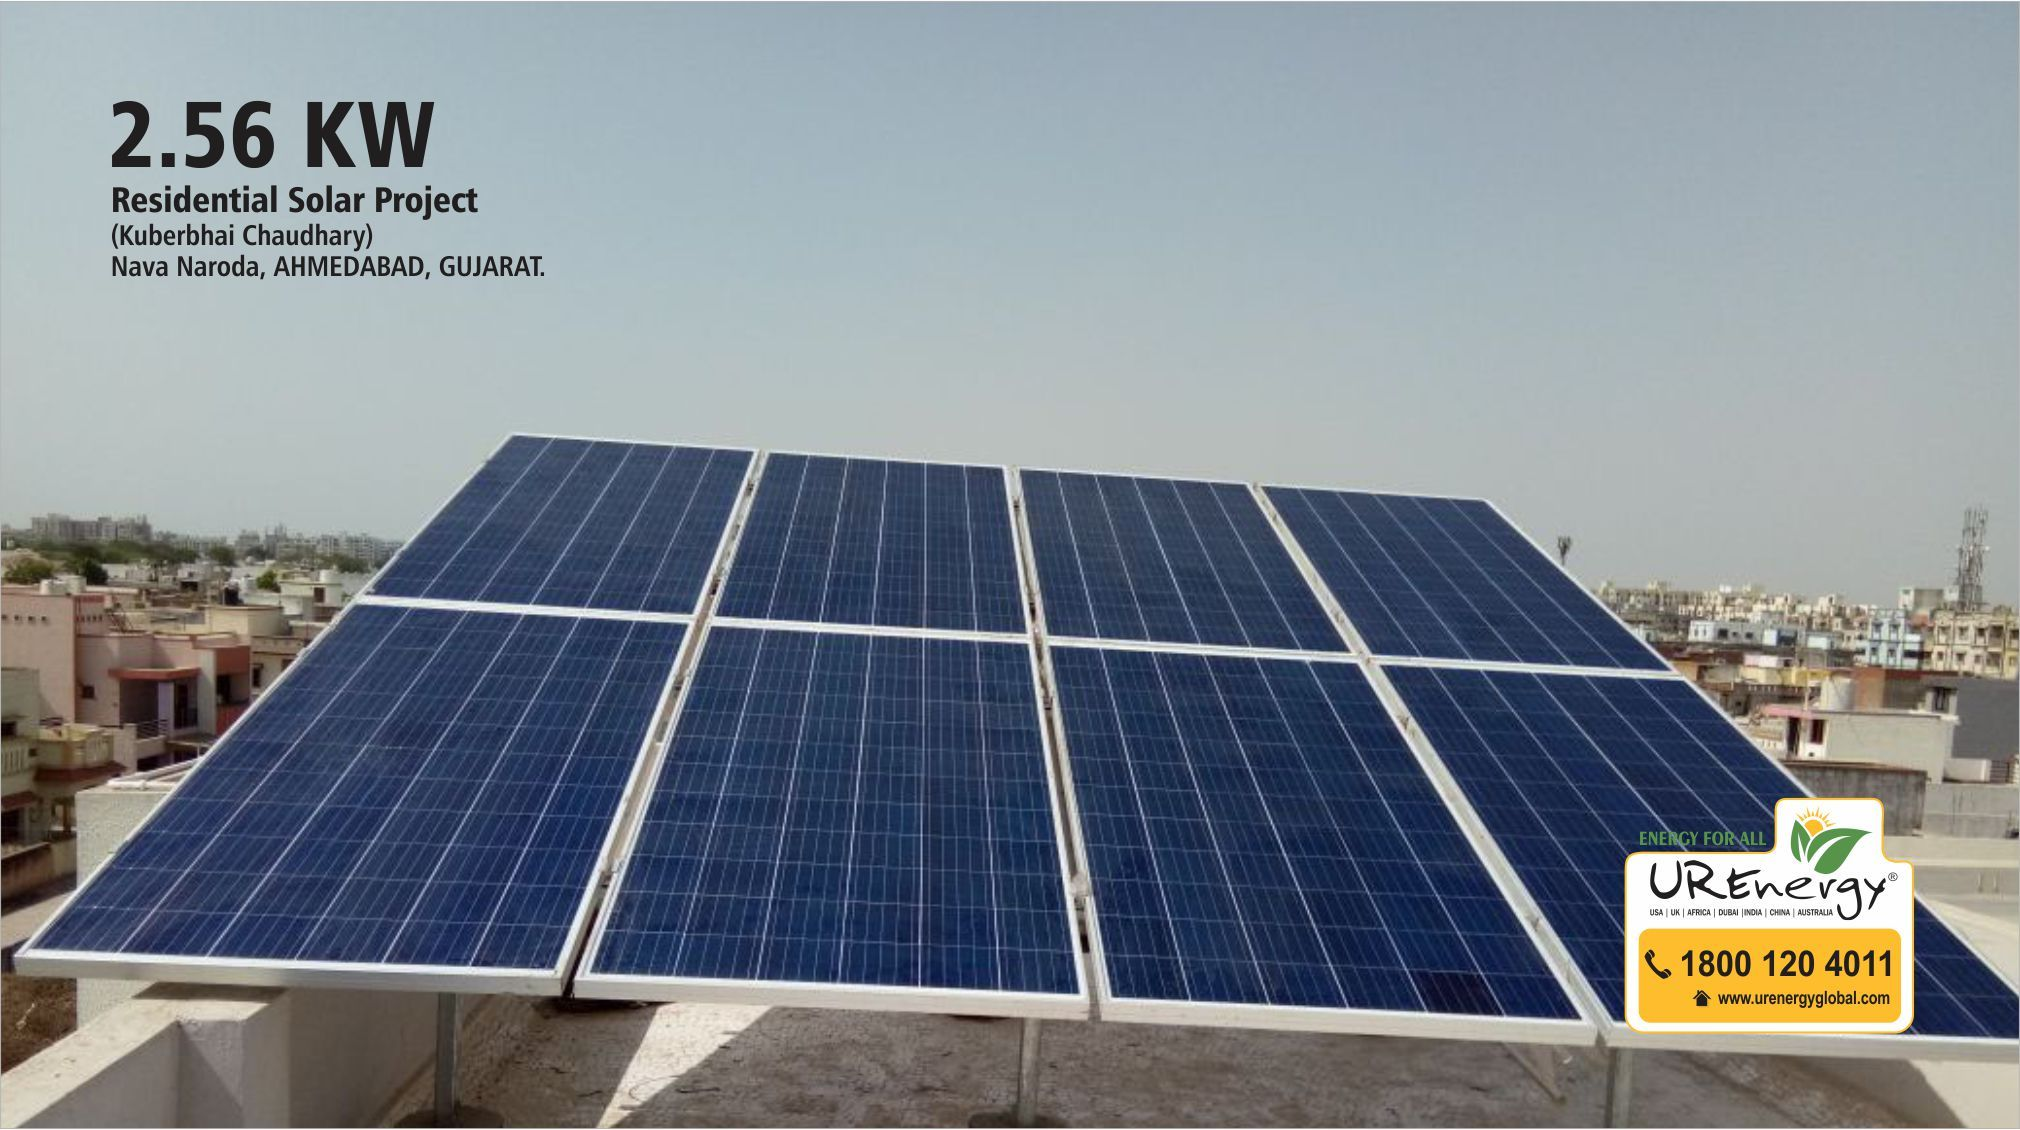 2 56 Kw Residential Solar Project Completed By U R Energy India Pvt Ltd At Ahmedabad Gujarat Gujarat S Number 1 Solar Residential Solar Solar Projects